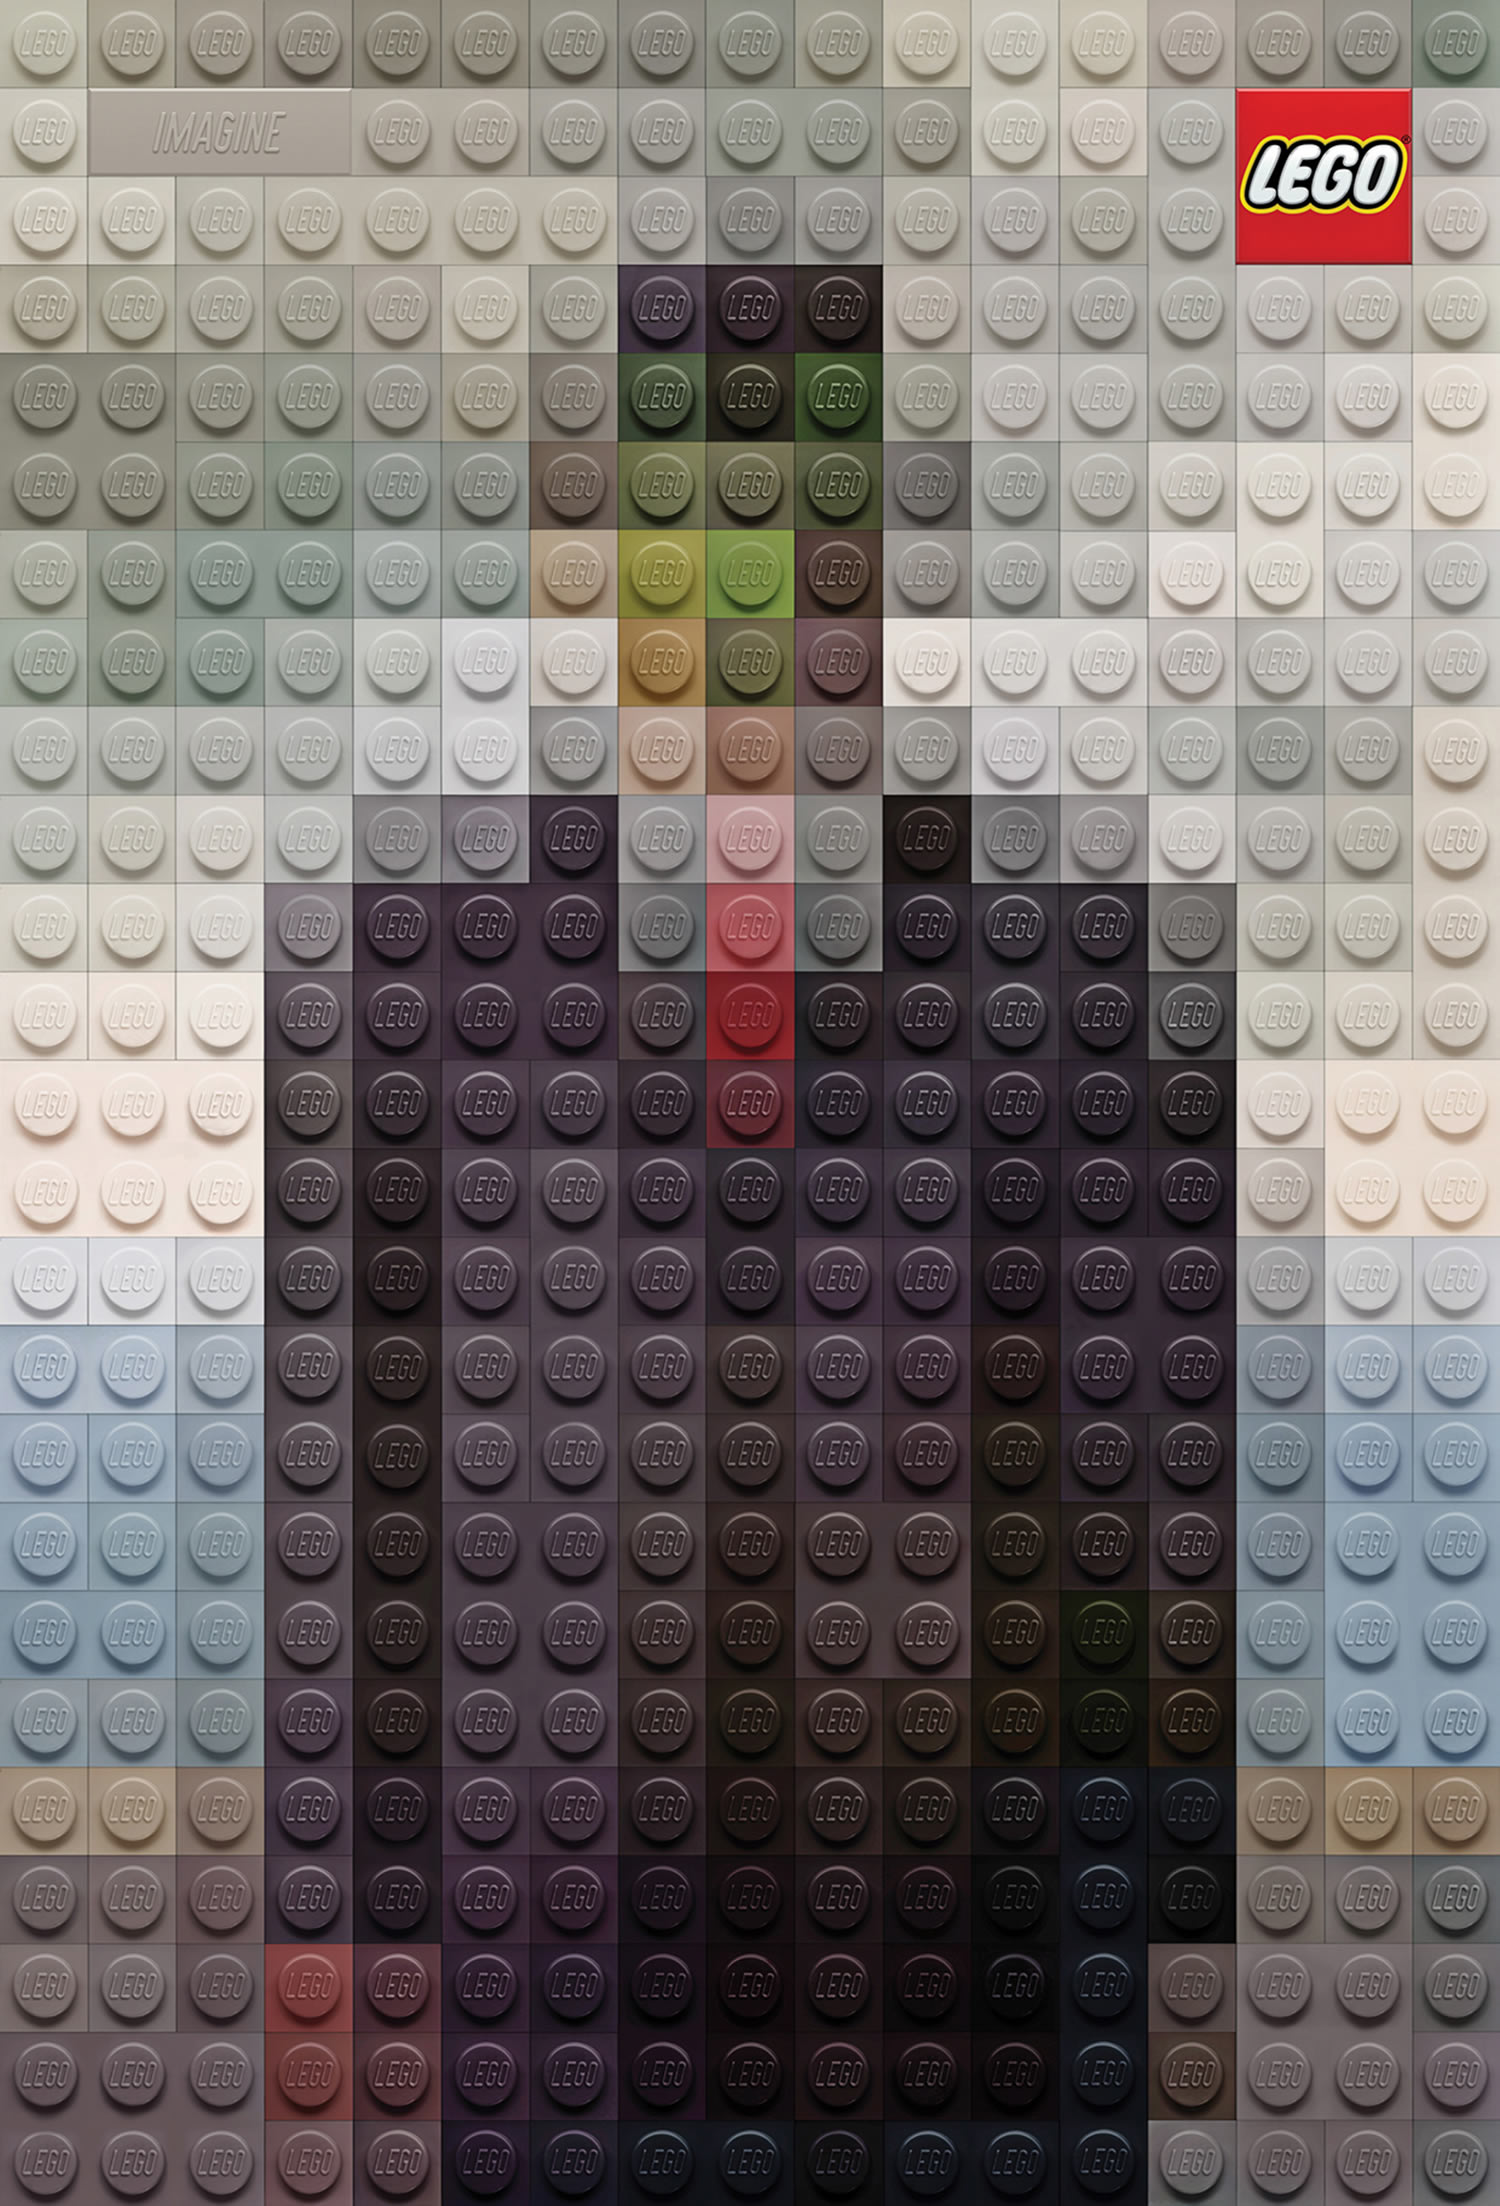 son of man, magritte, lego poster by marco sodano